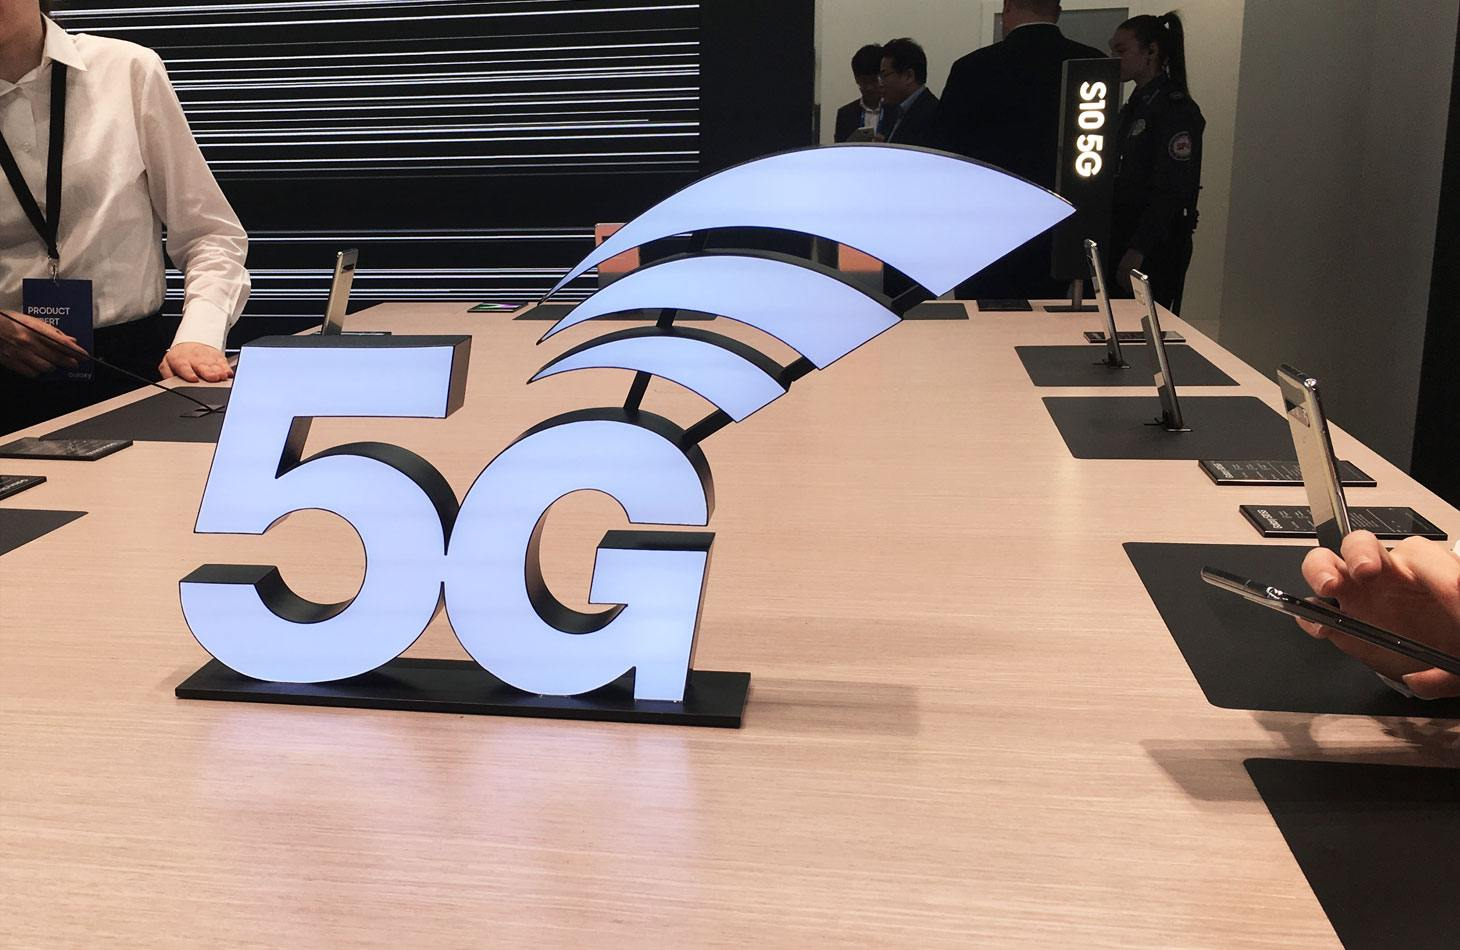 Mobile World Congress 2019: 5G networks are finally coming